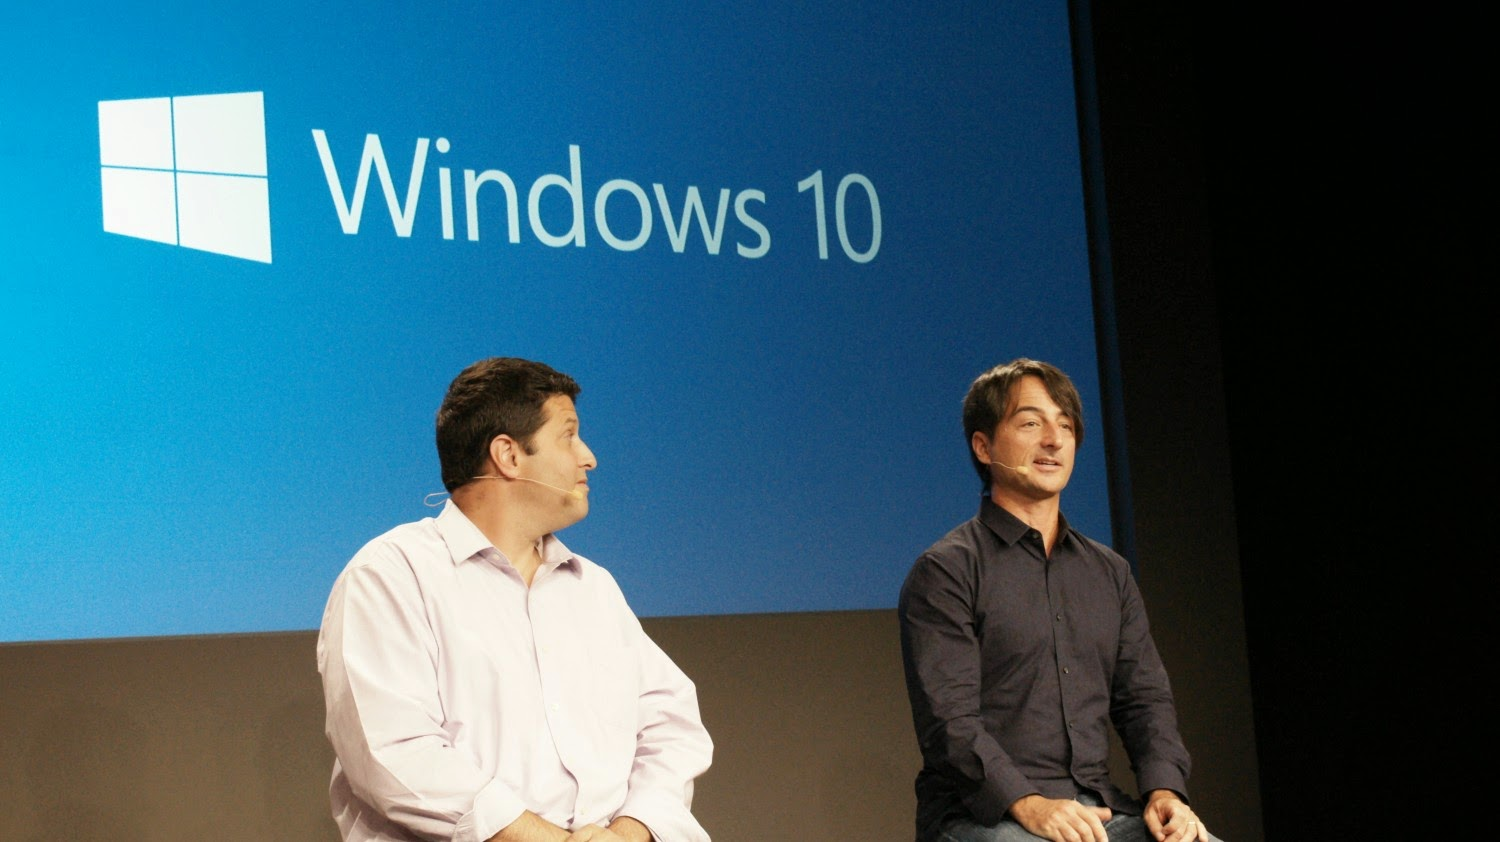 Windows 10 November Release